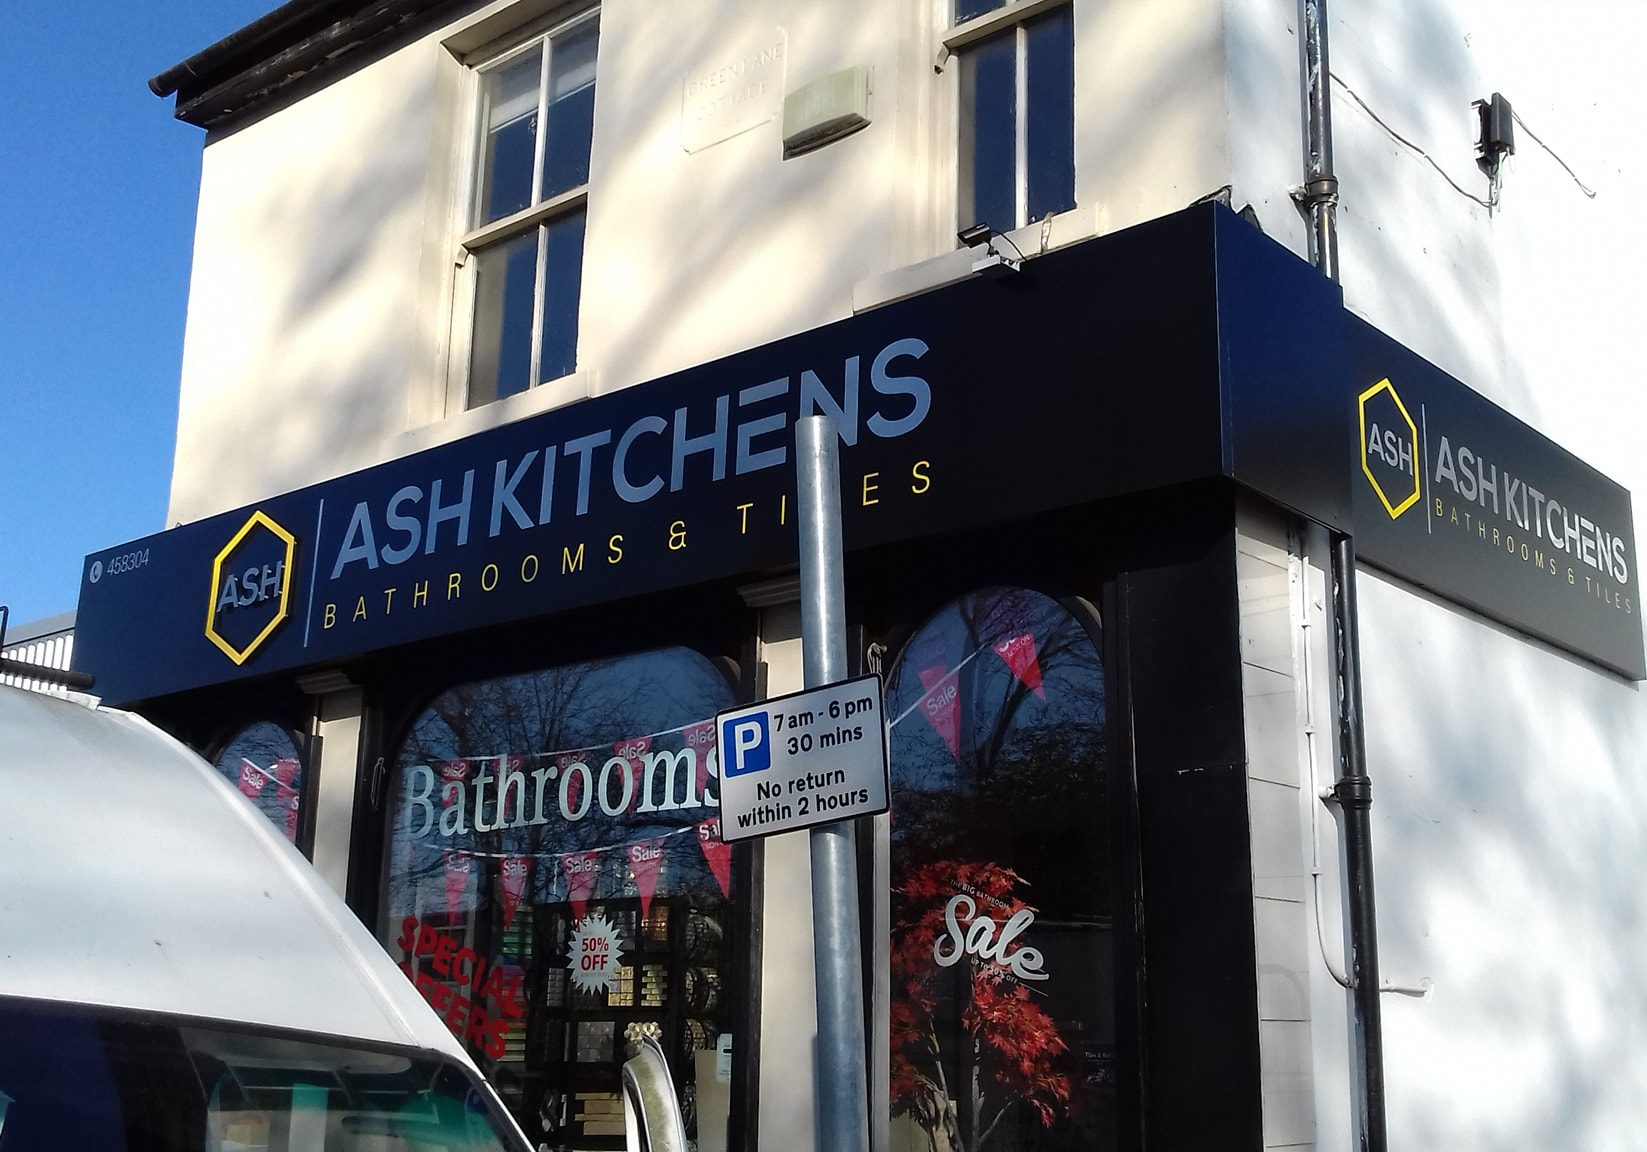 Ash Kitchens store sign